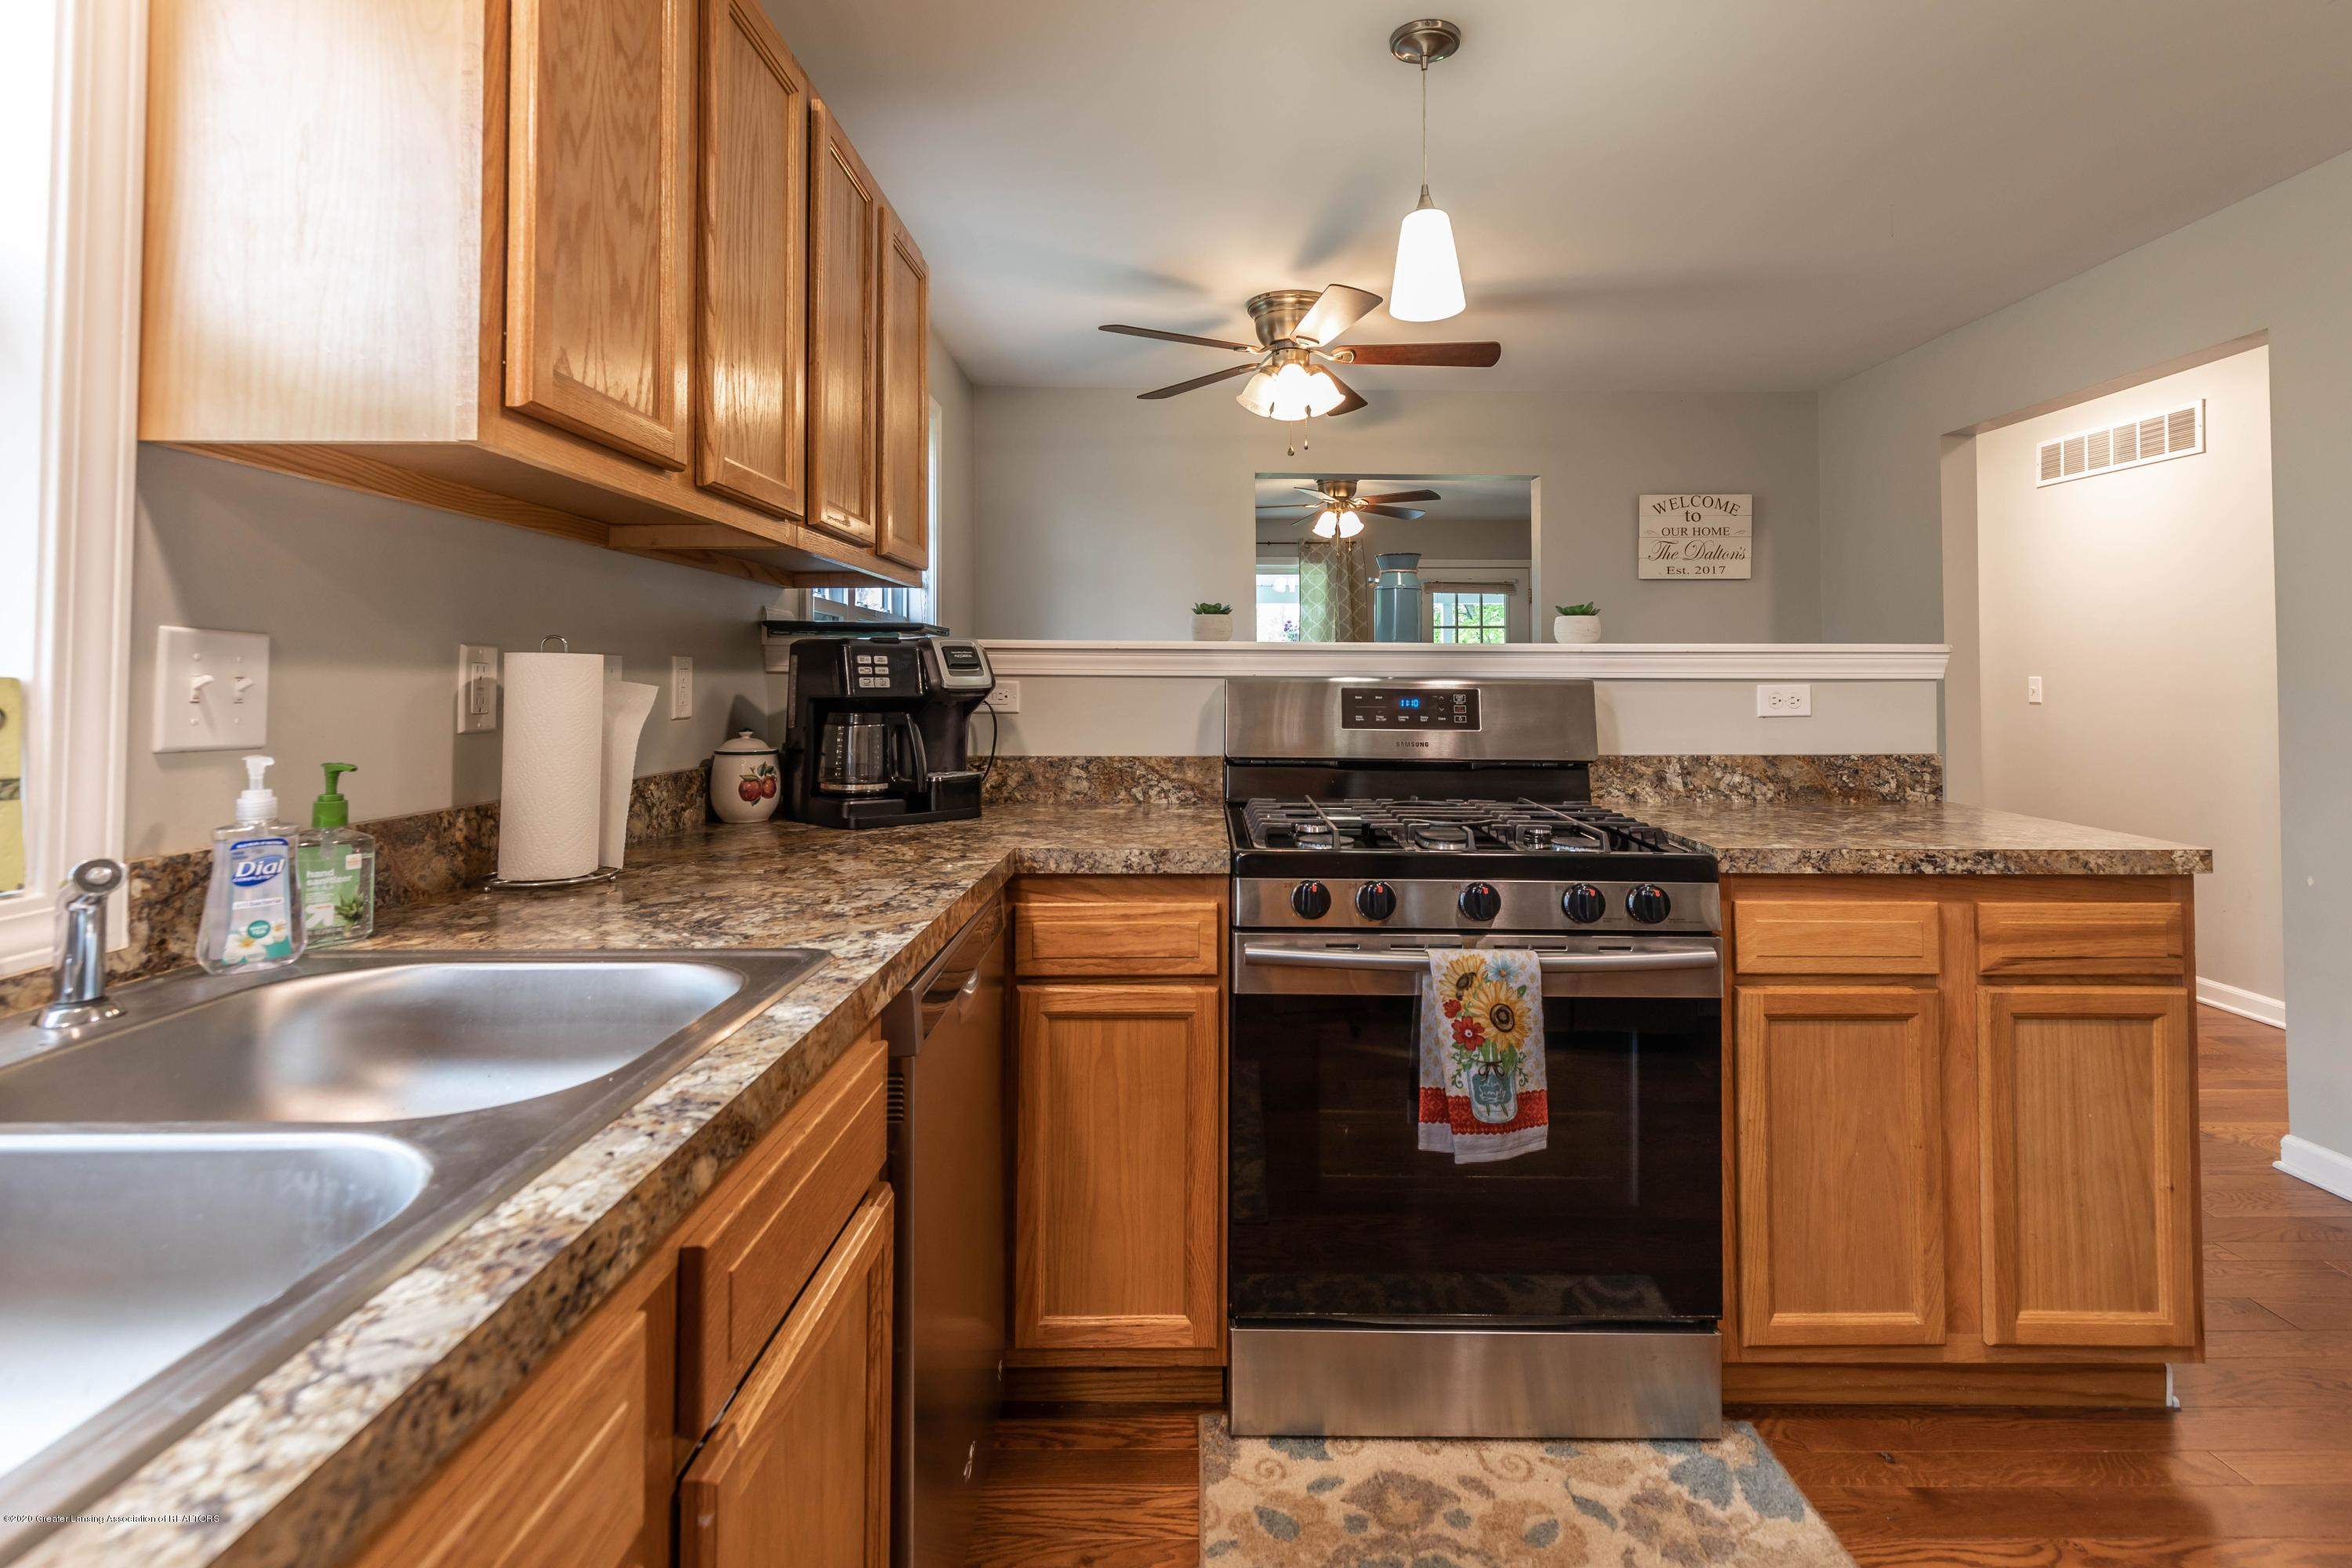 790 Woodworth Rd - Kitchen3 - 12